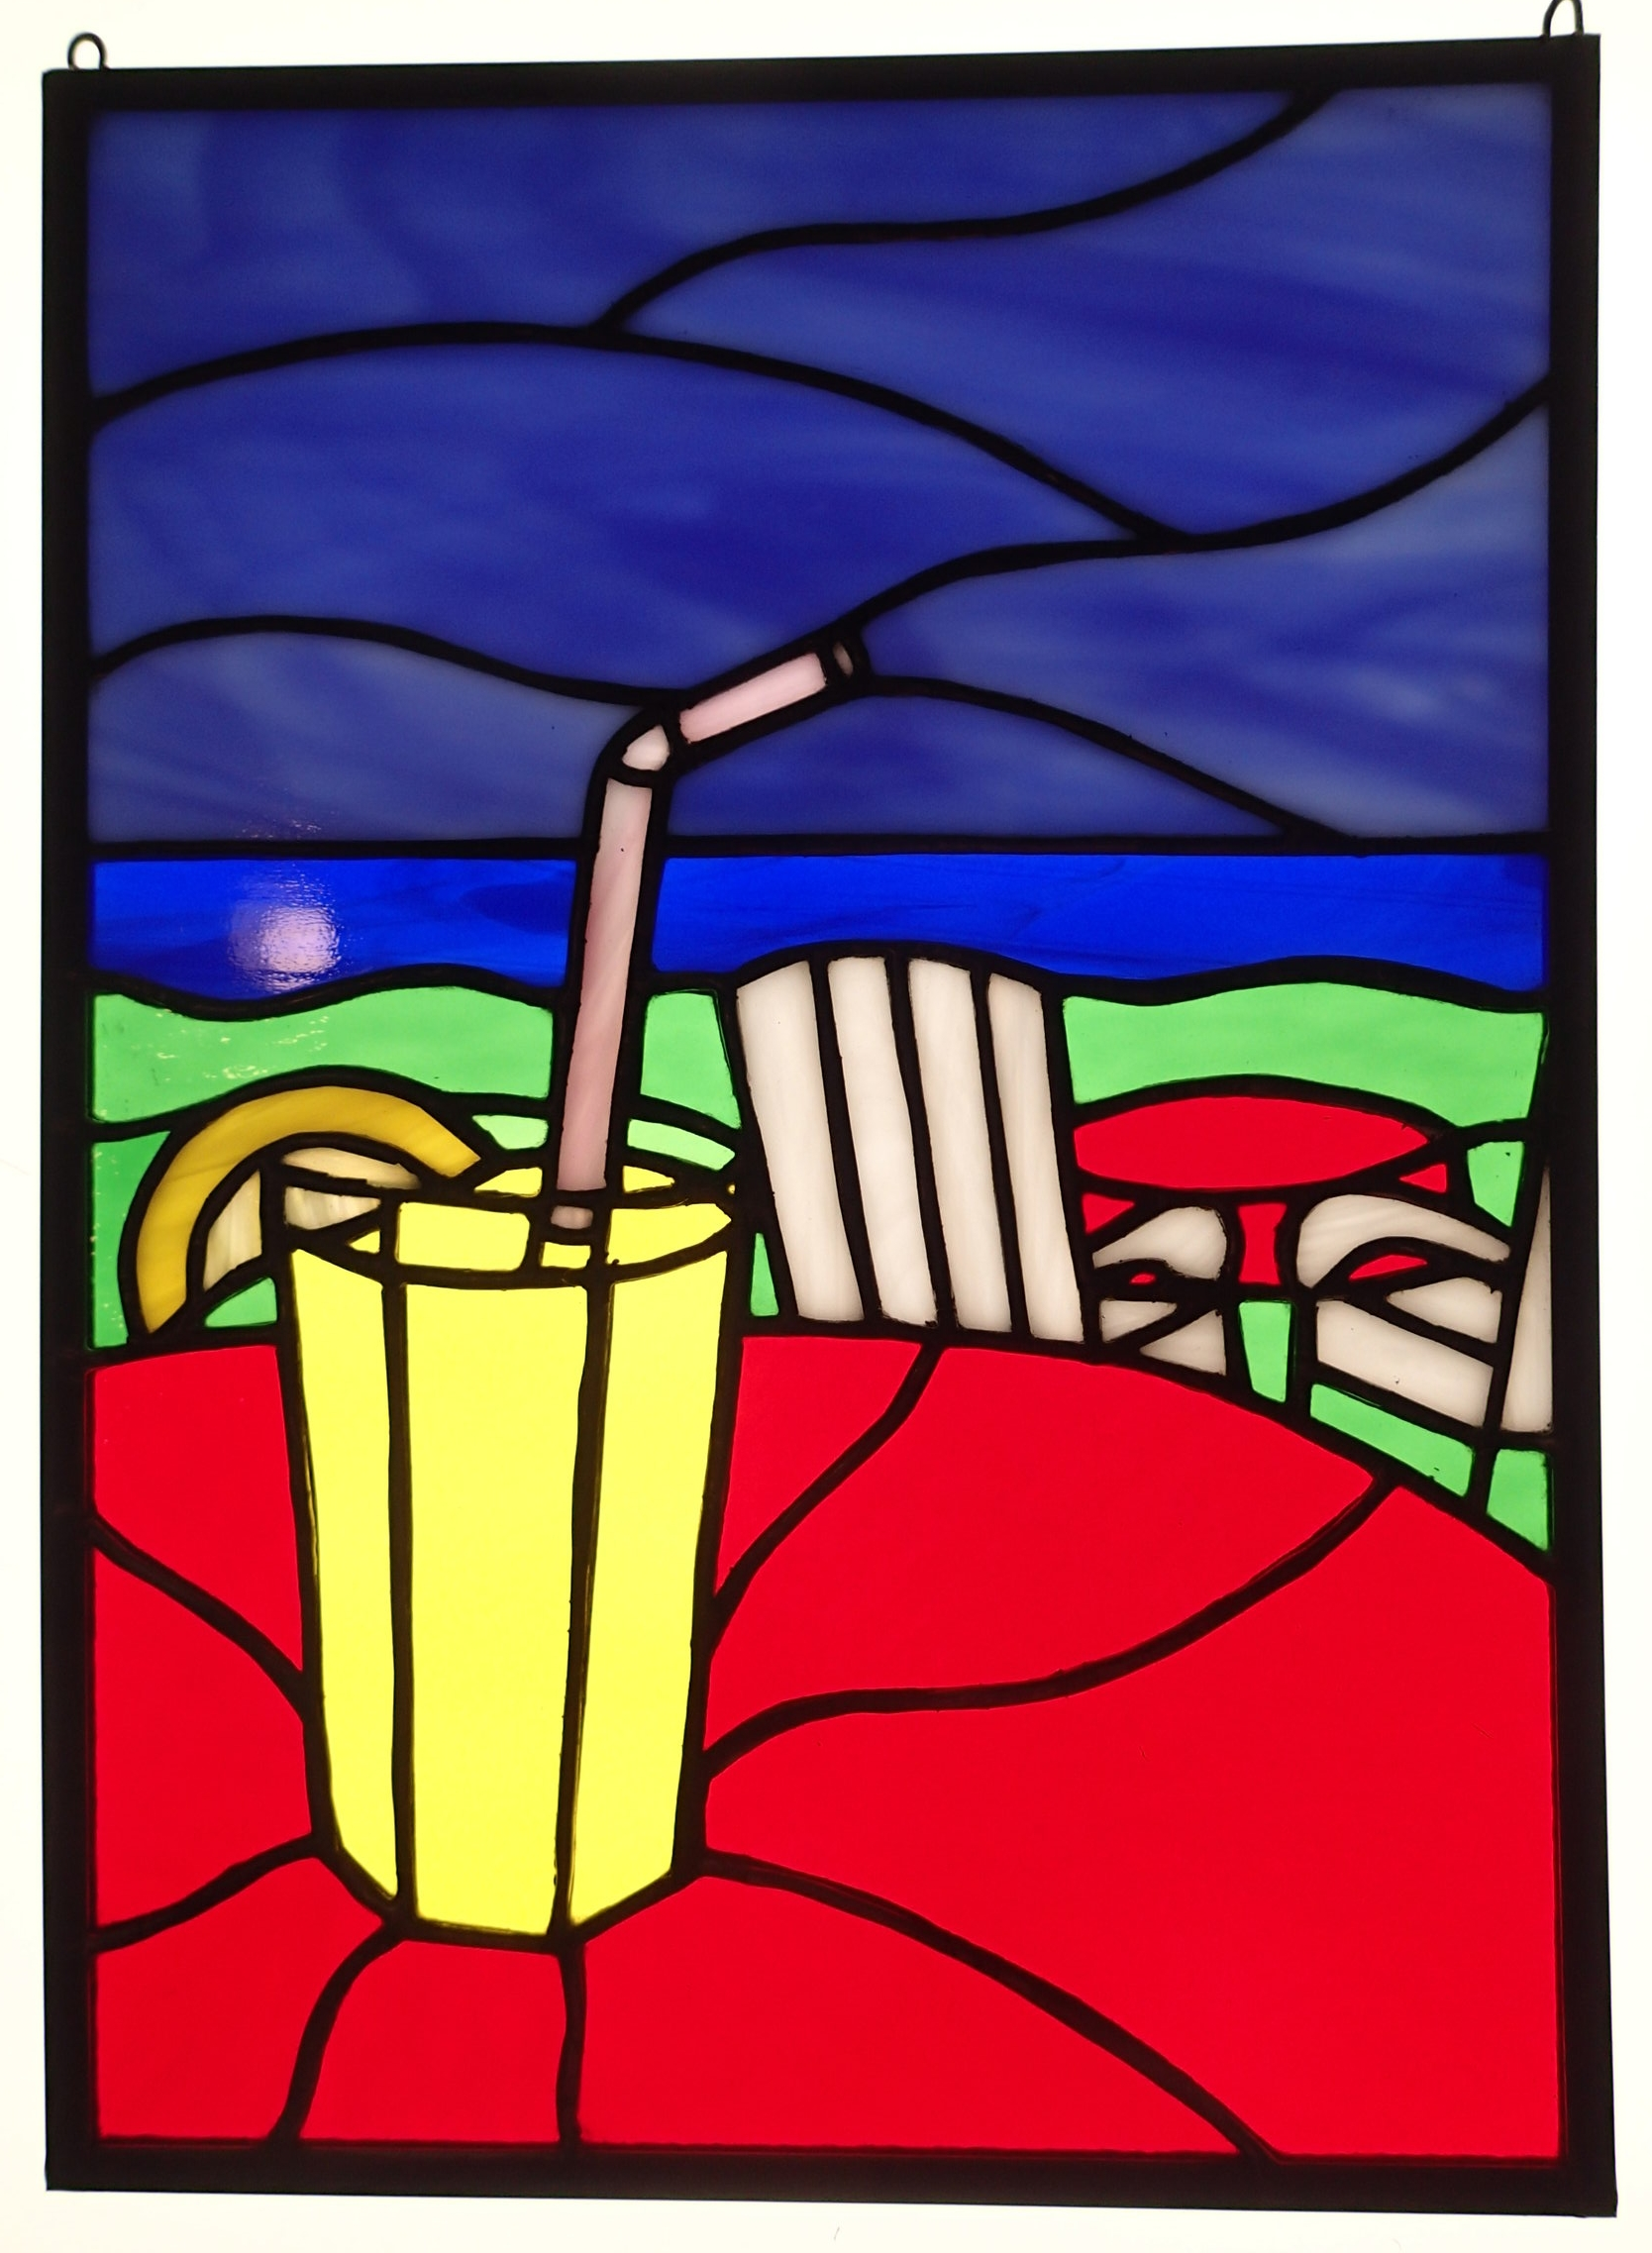 stained_glass_lemonade.jpg